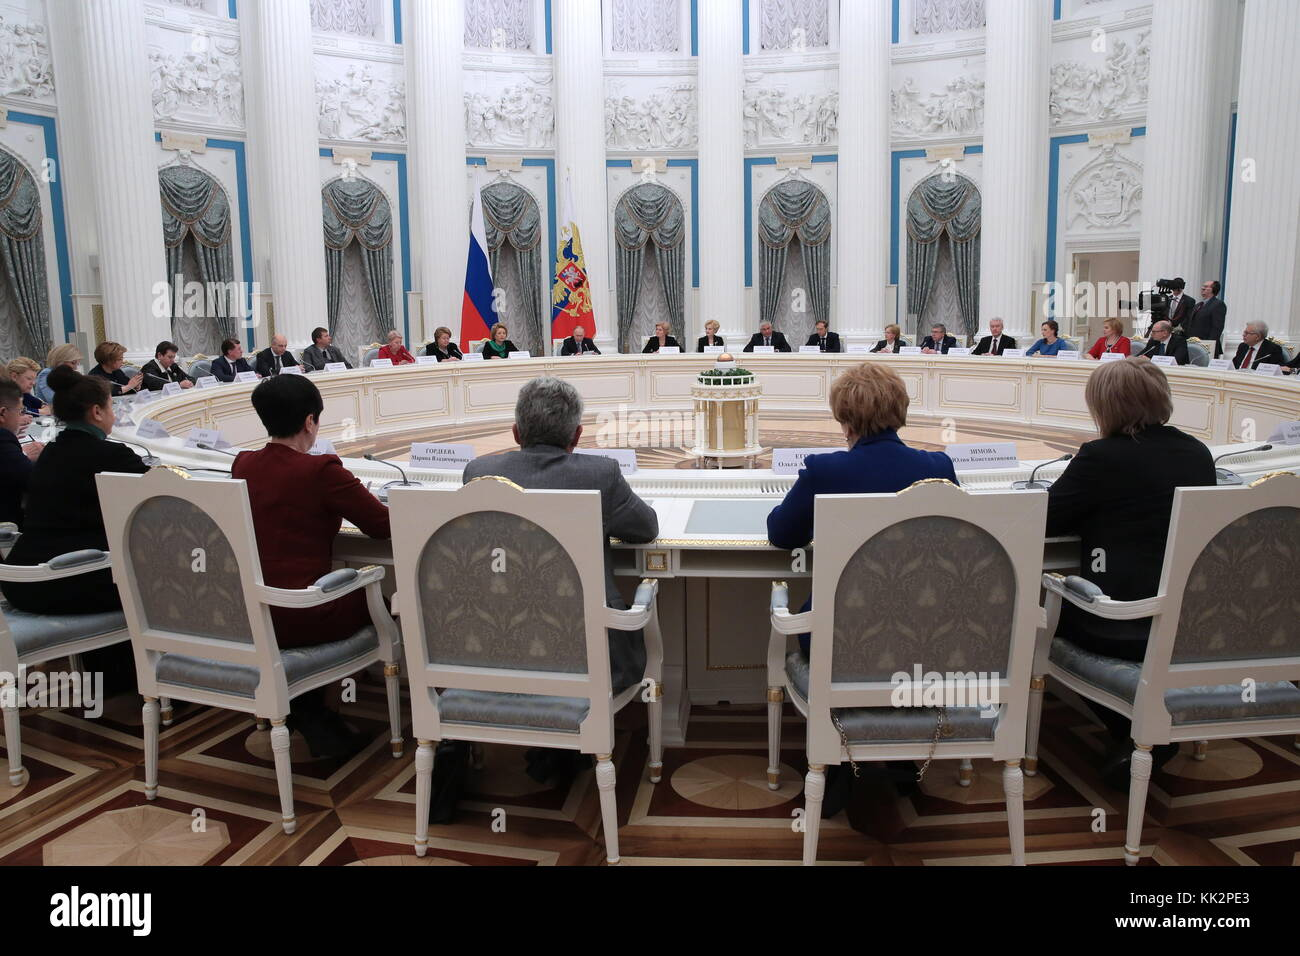 Moscow, Russia. 28th Nov, 2017. A meeting of the Coordinating Council for Implementing National Children's Strategy. - Stock Image